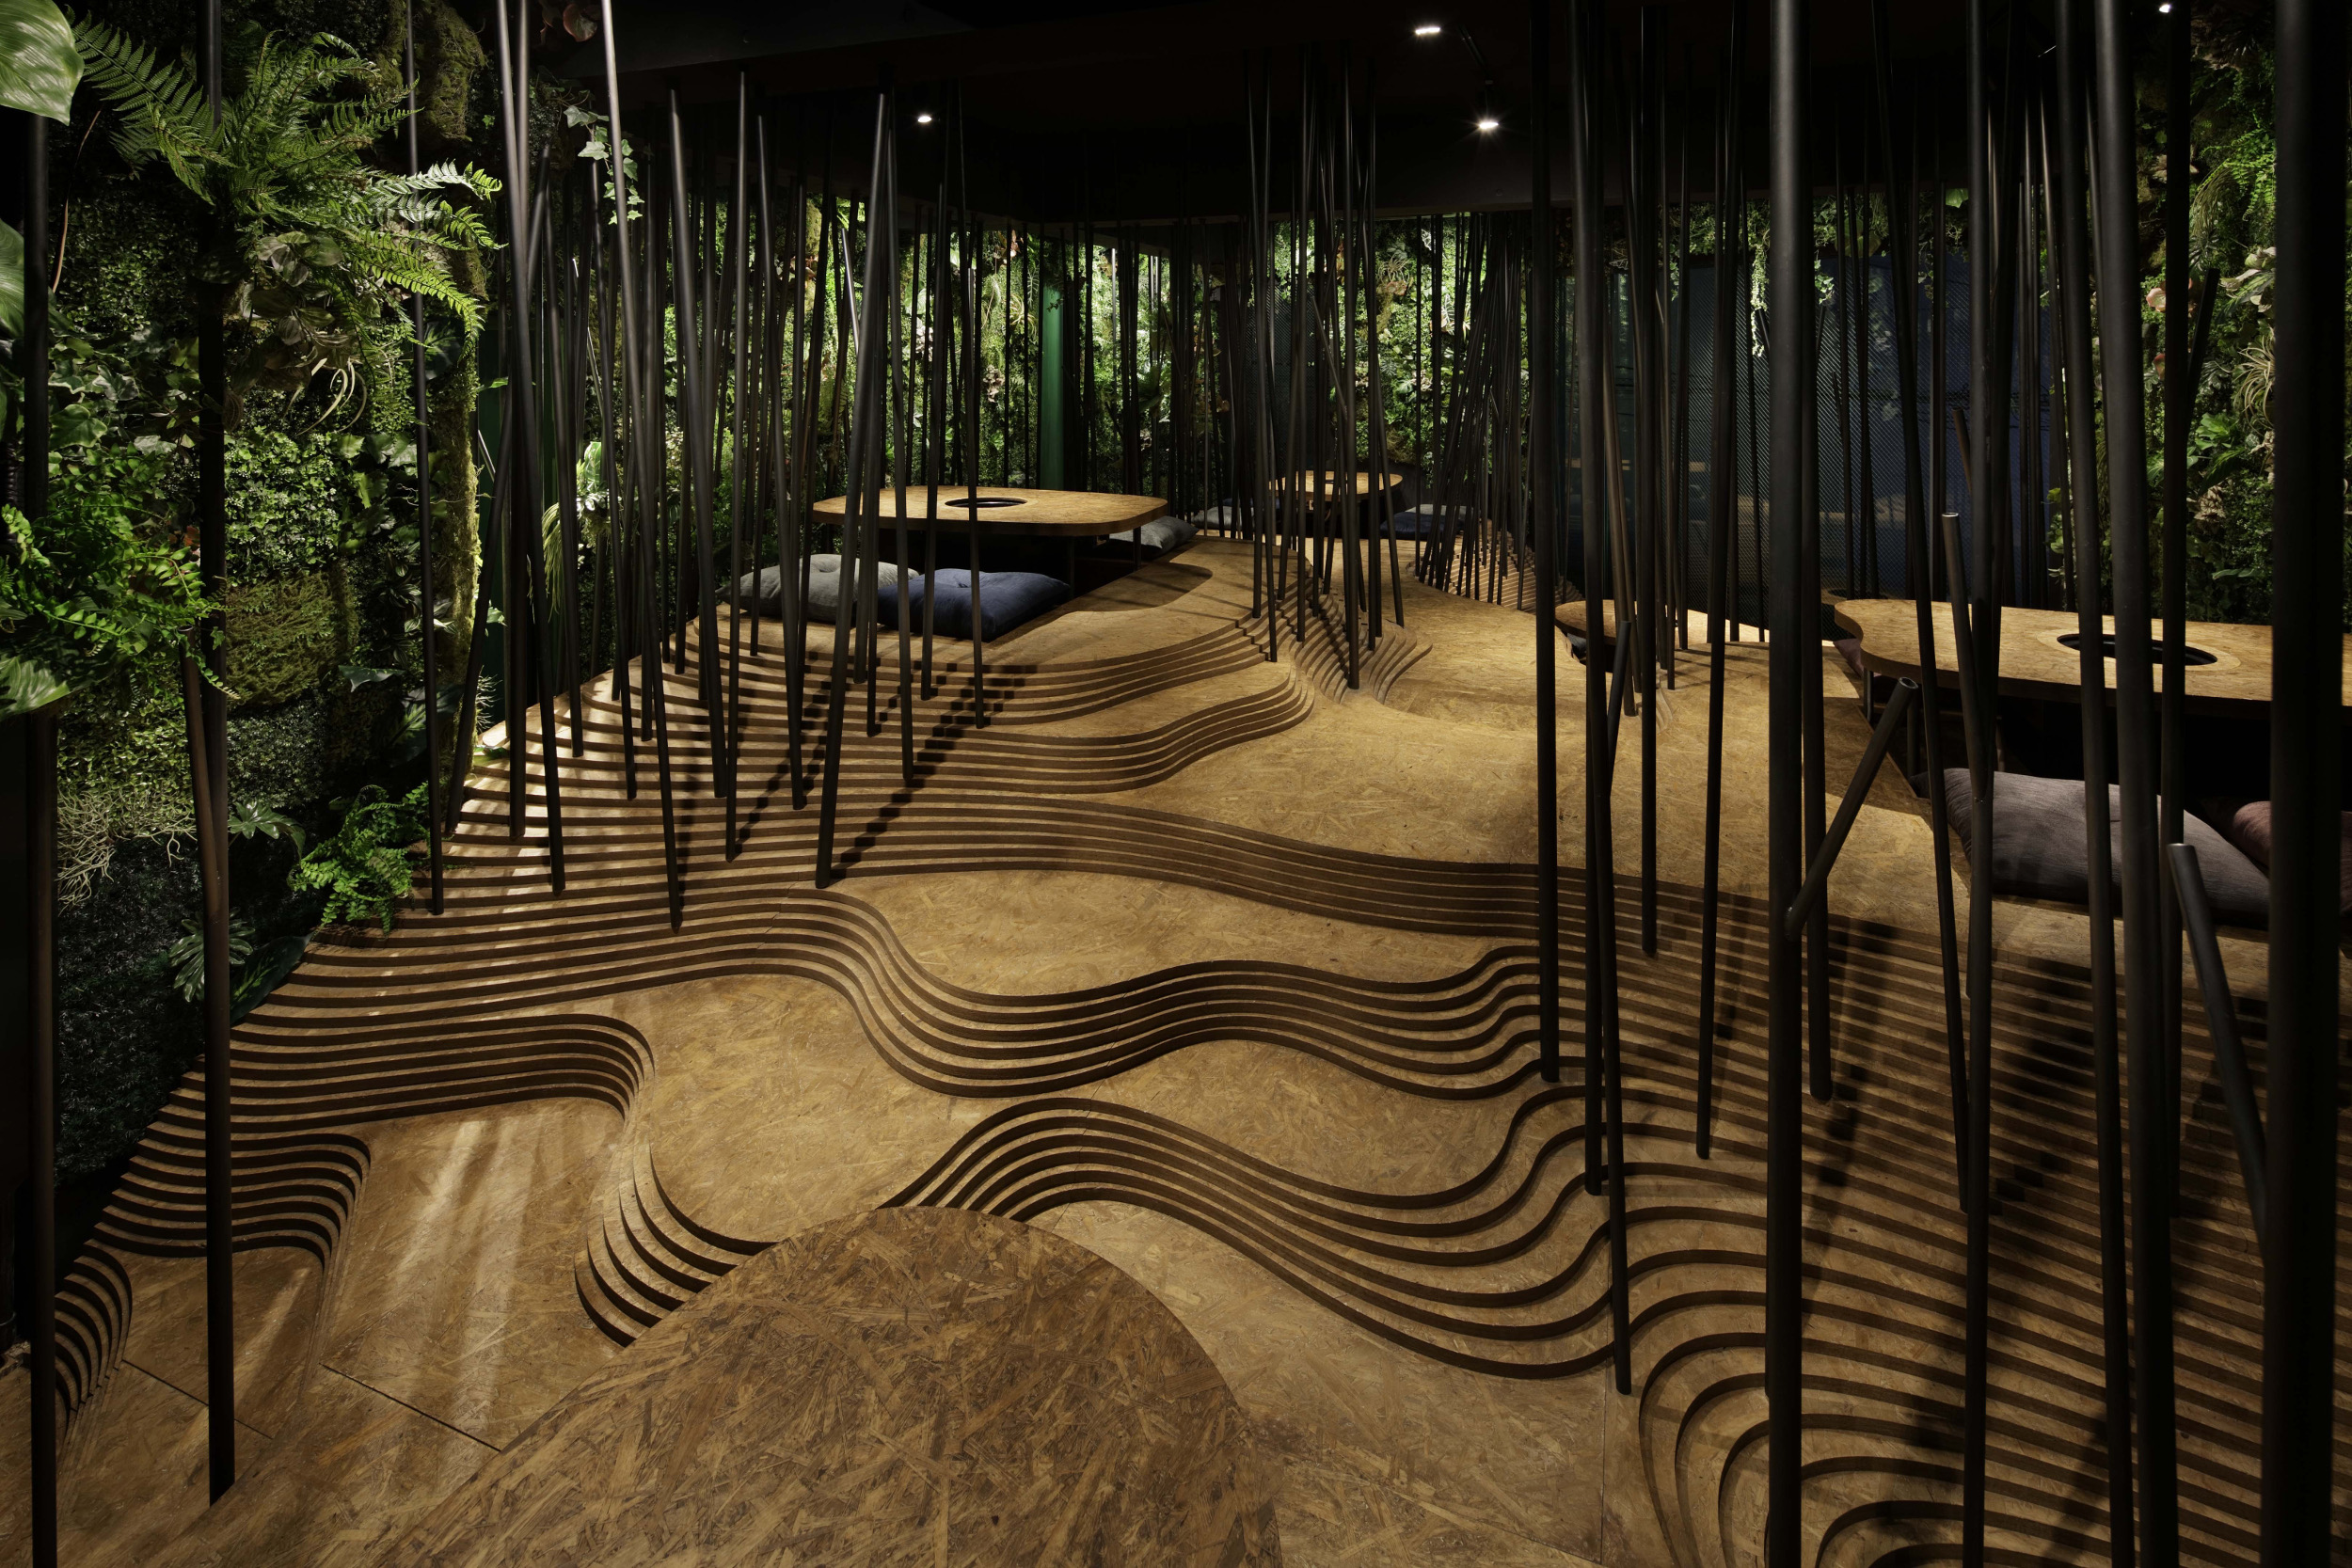 The upper floor of the restaurant is designed to make customers feel as if they are eating in a forest.